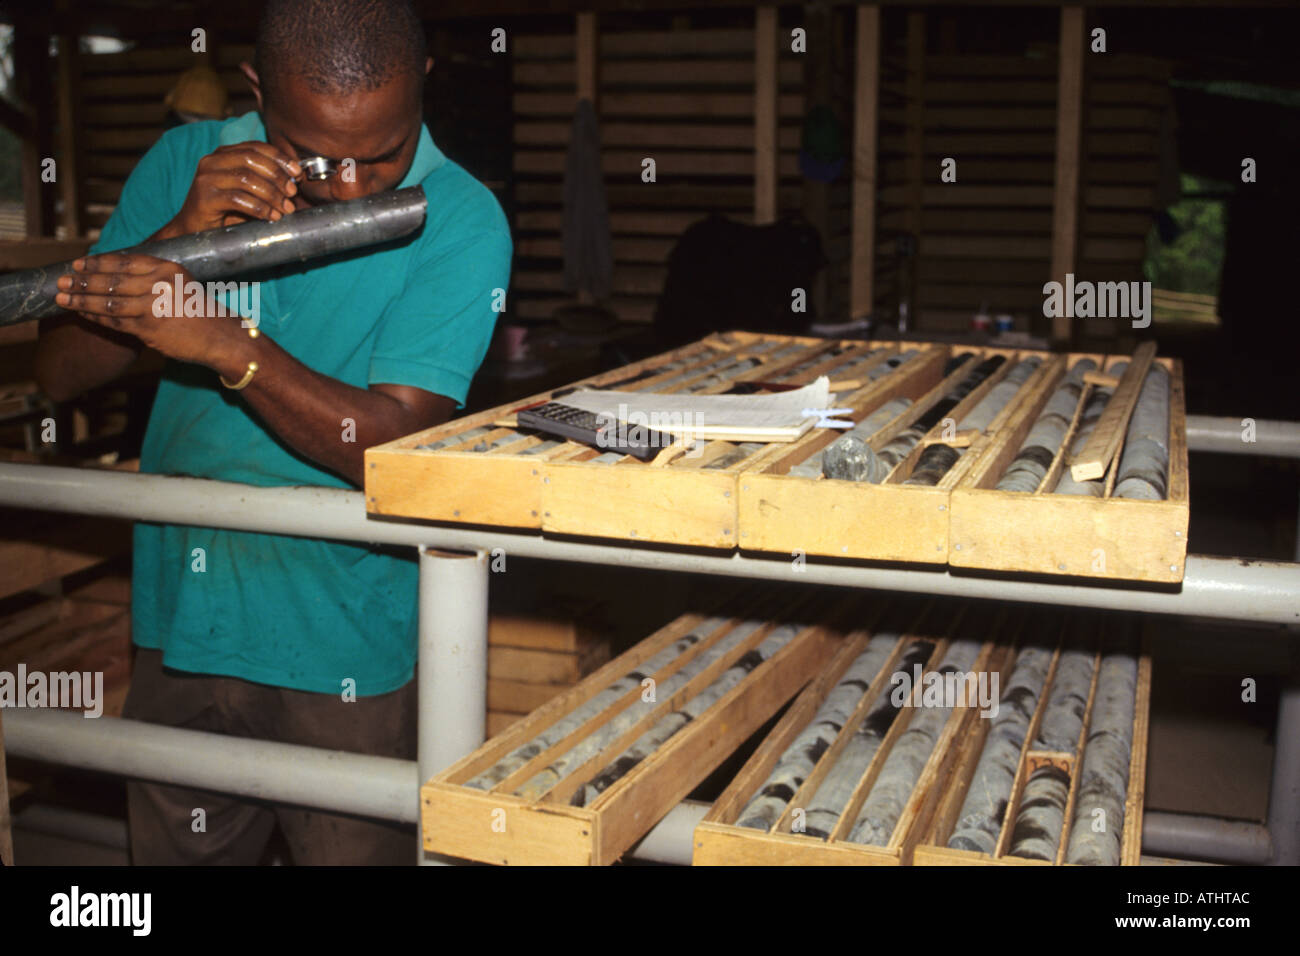 Geologist Examining Sample Mineral Core for Gold, SOMIAF Gold Mine, Ivory Coast (Cote d'Ivoire) - Stock Image